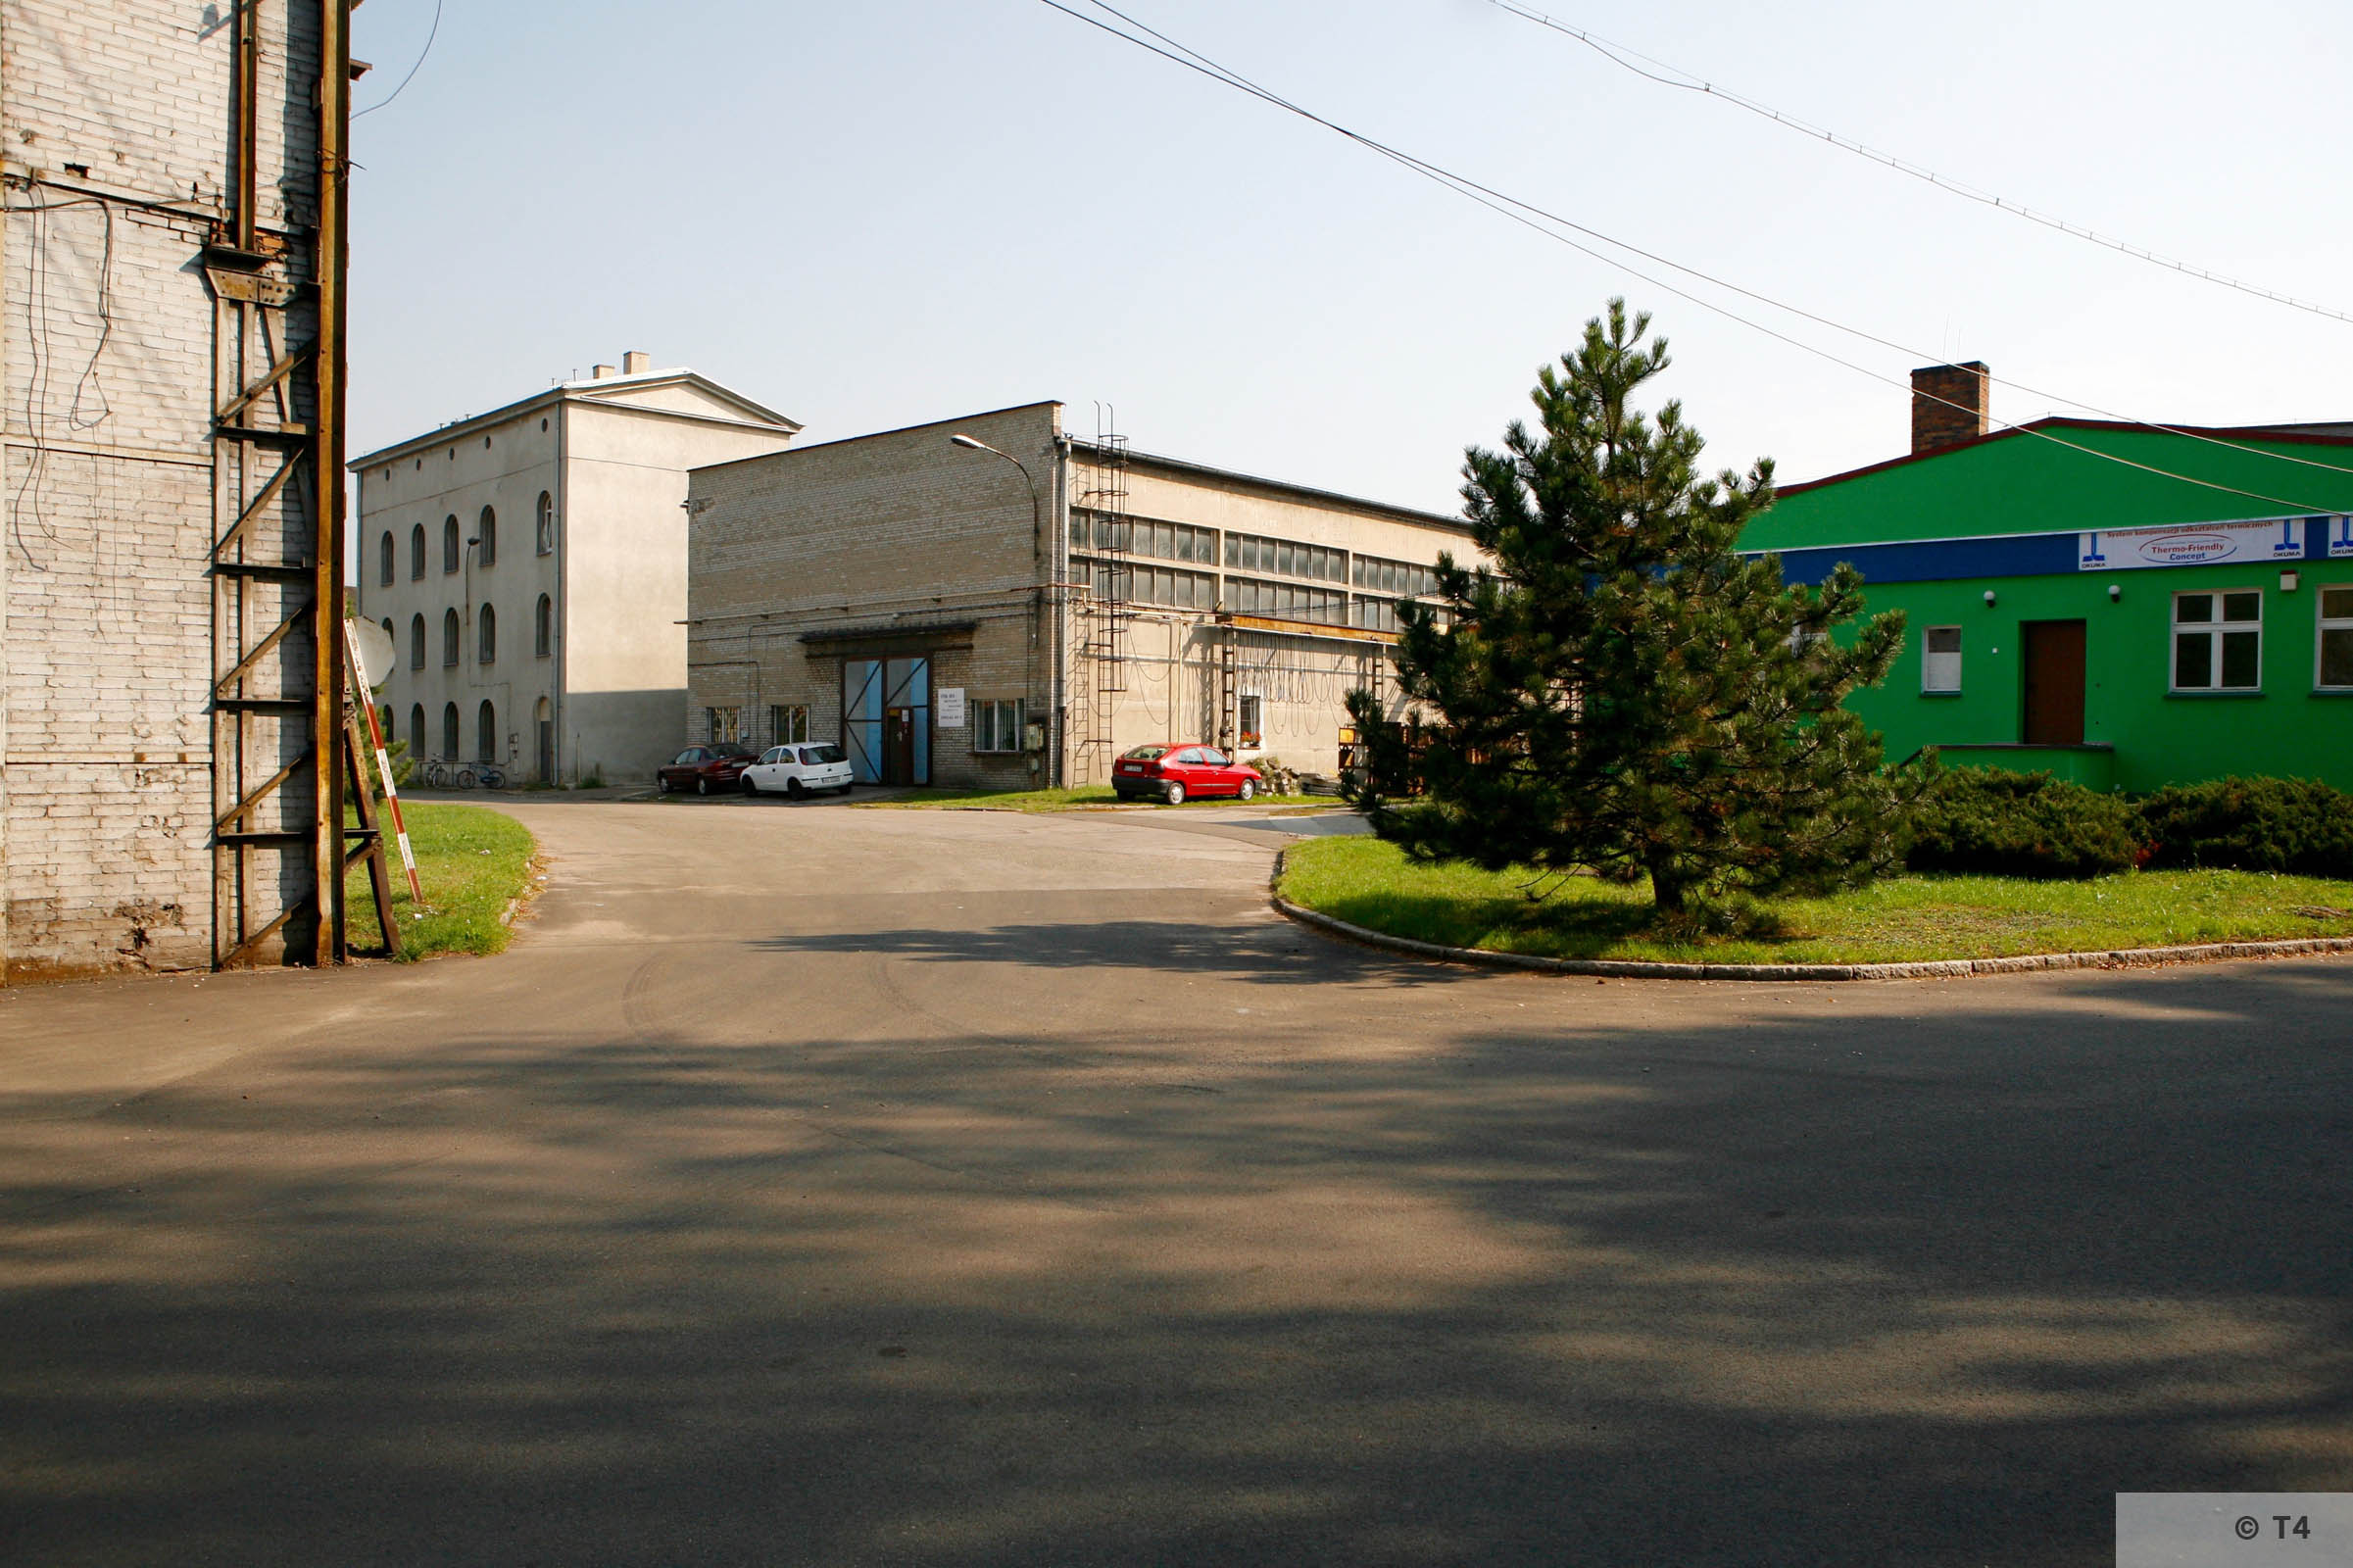 Buildings of the former Gleiwitzer steel works. 2006 T4 1484